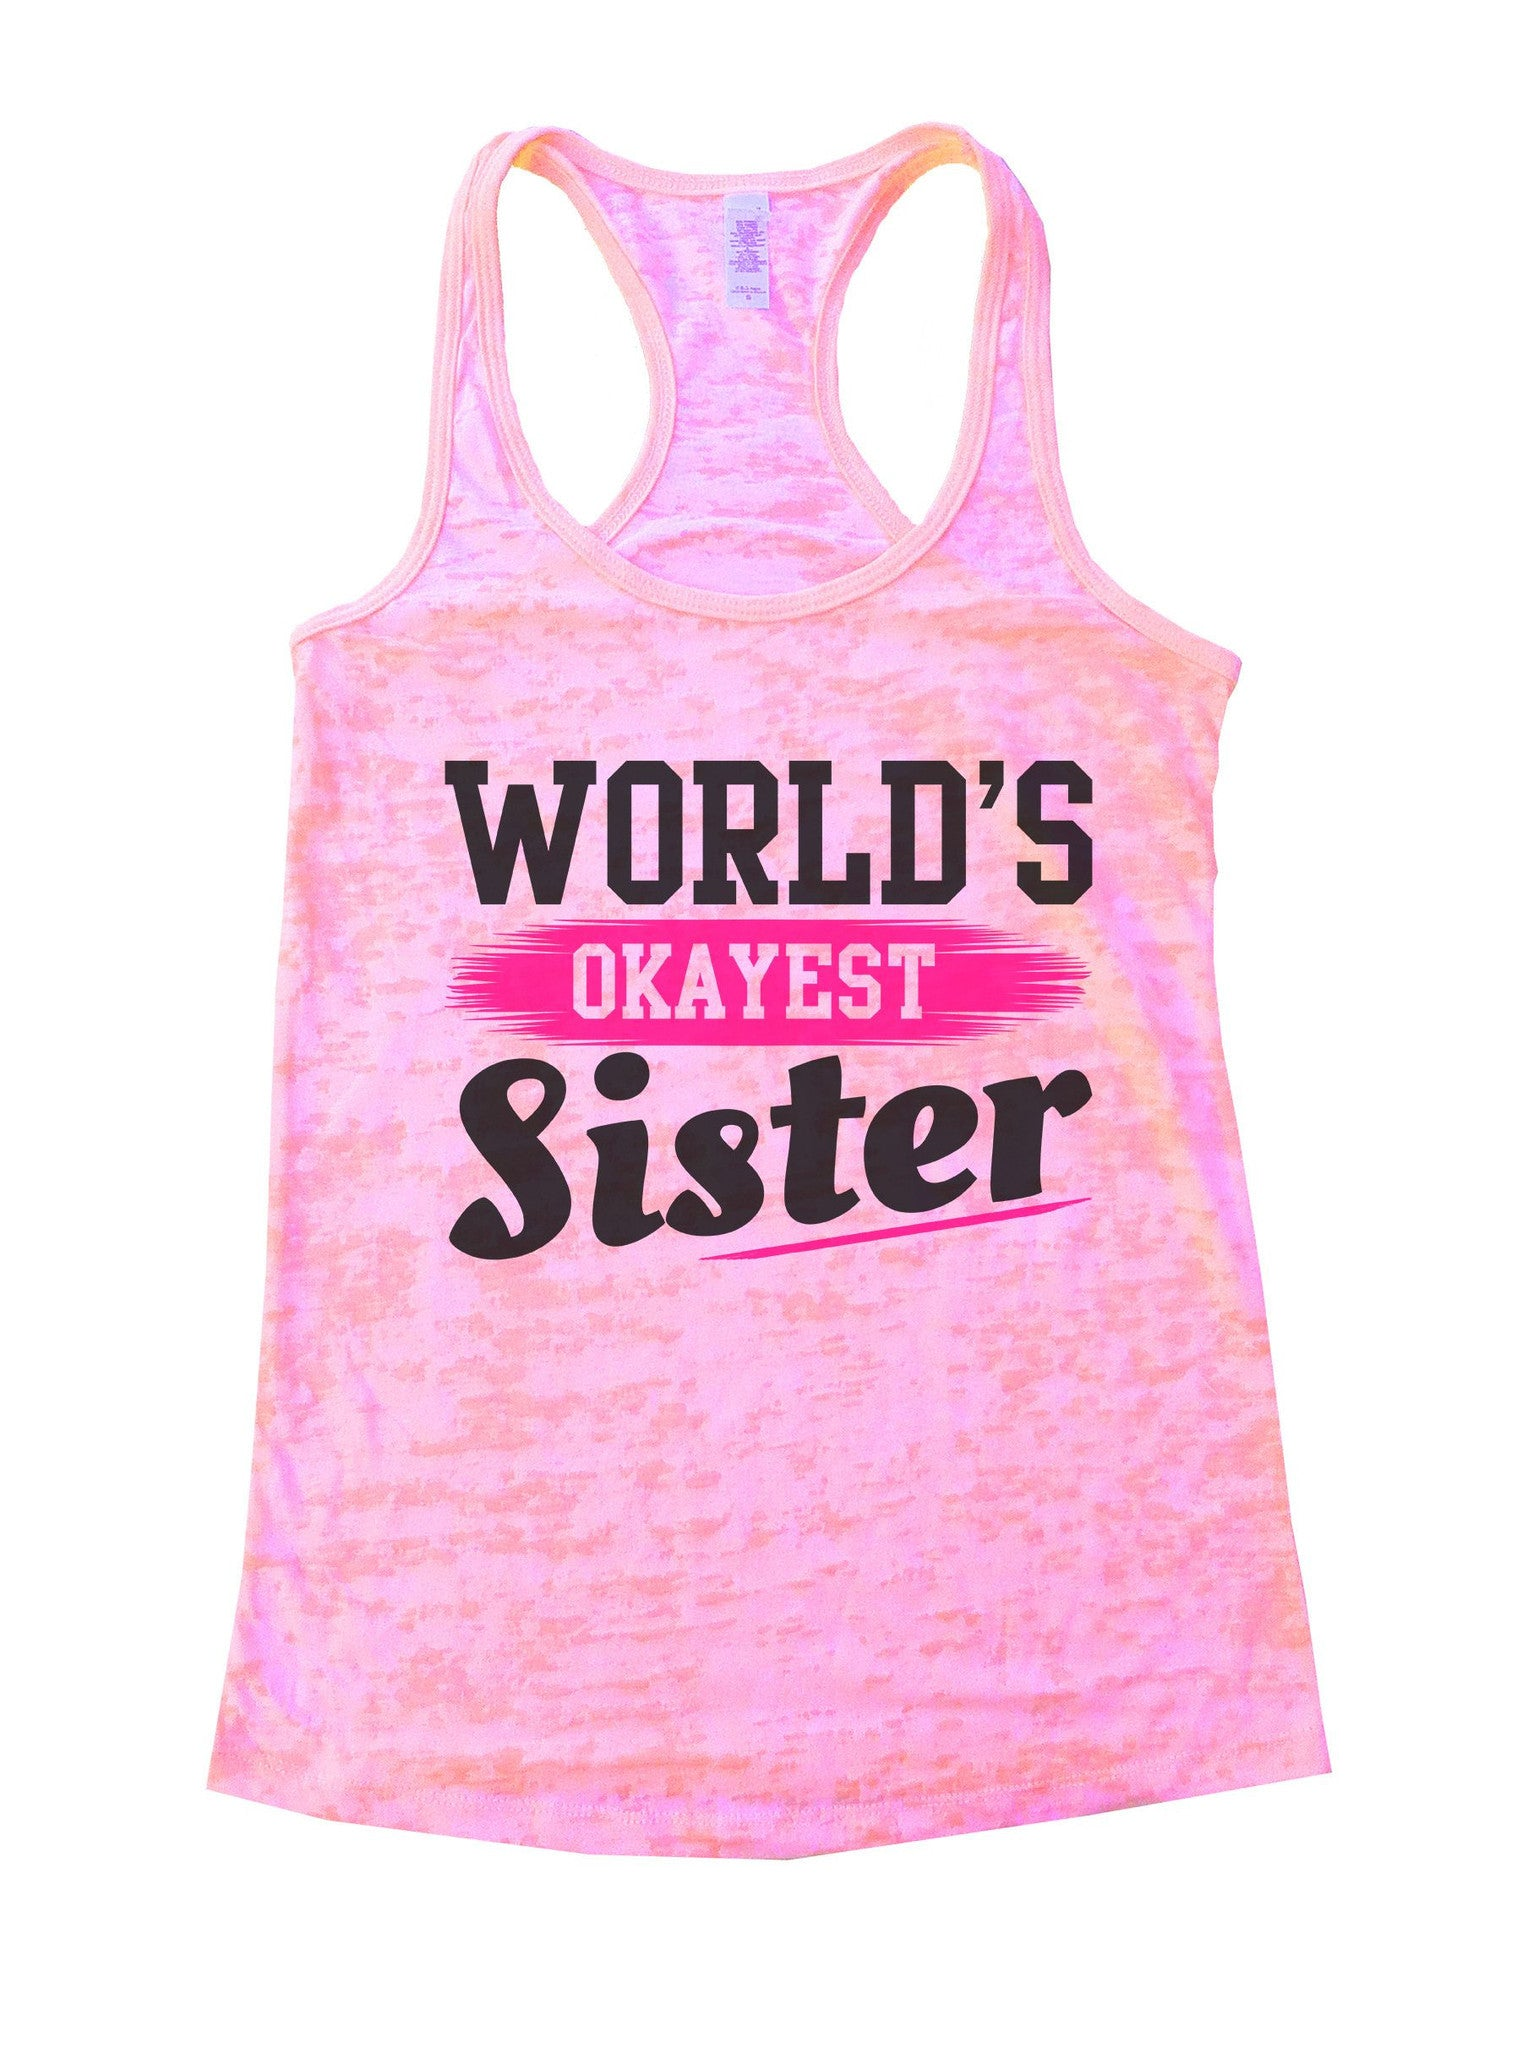 World's Okayest Sister Burnout Tank Top By BurnoutTankTops.com - 1033 - Funny Shirts Tank Tops Burnouts and Triblends  - 2